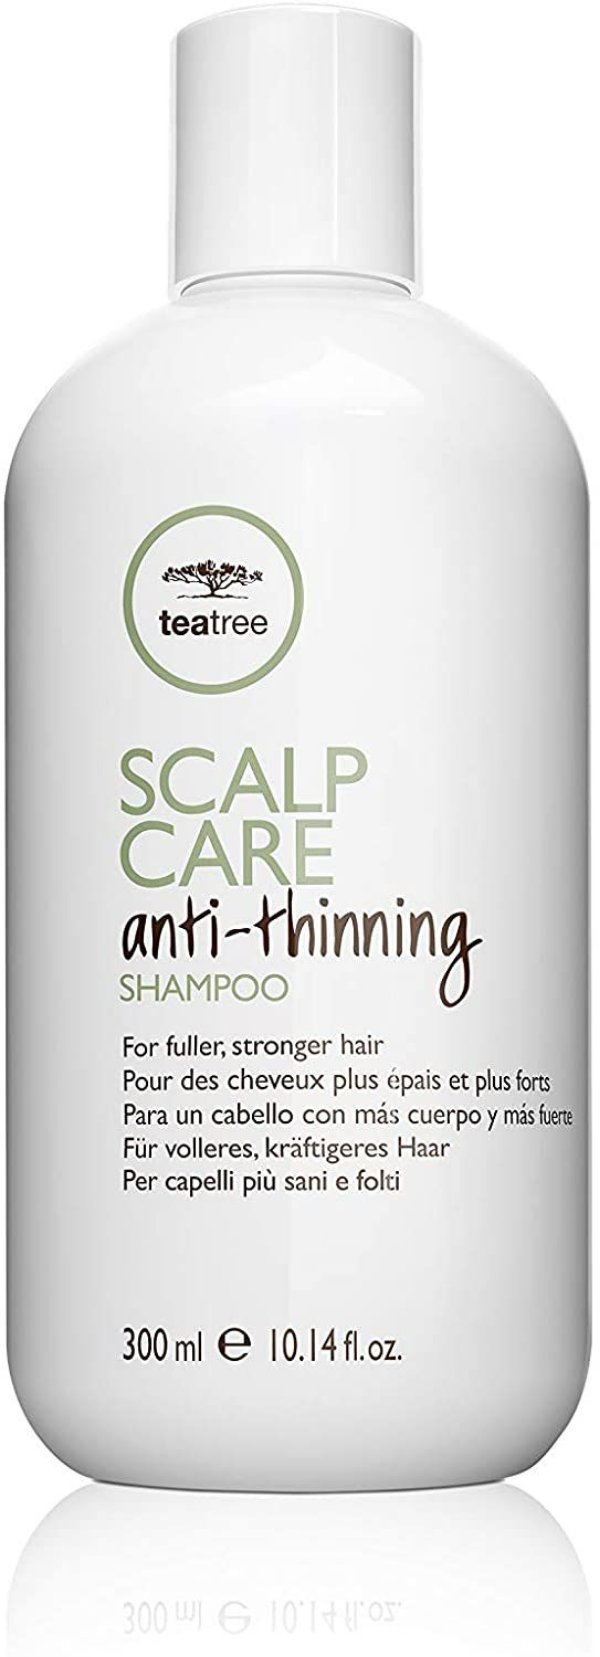 Paul Mitchell Scalp Care Anti-thinning Shampoo - 300ml